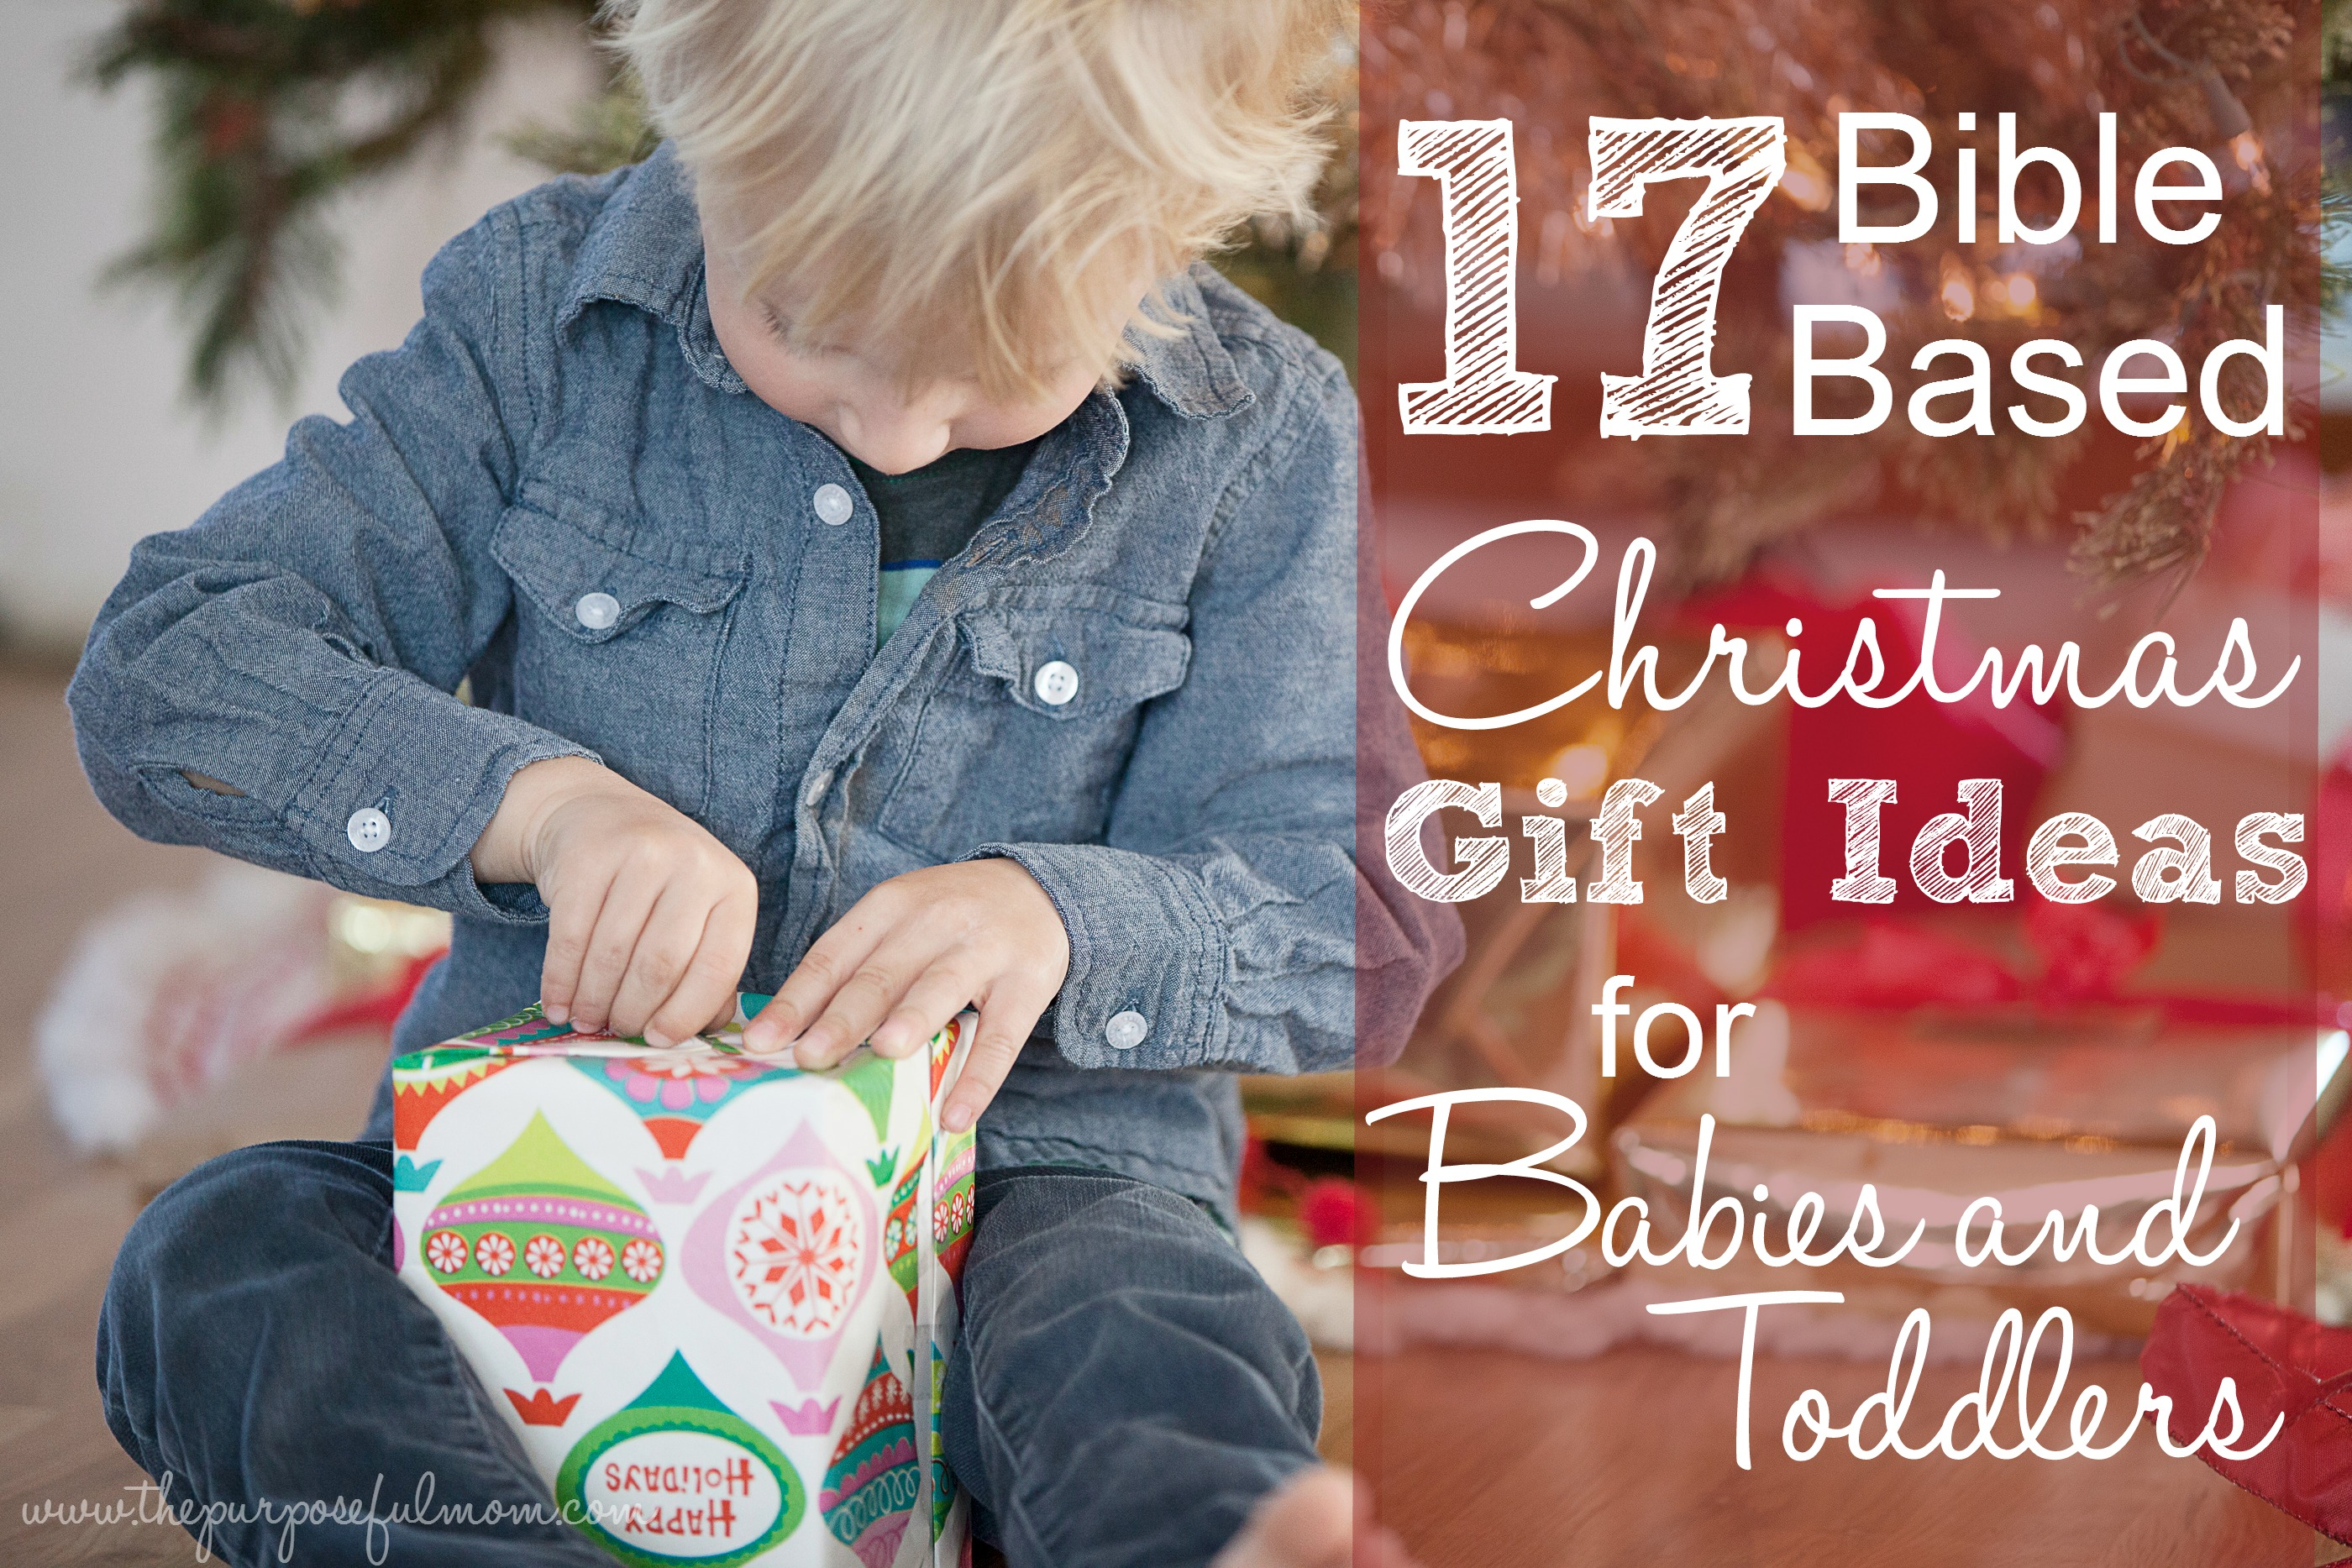 Bible Based Christmas Gifts for Kids Ages 0-3